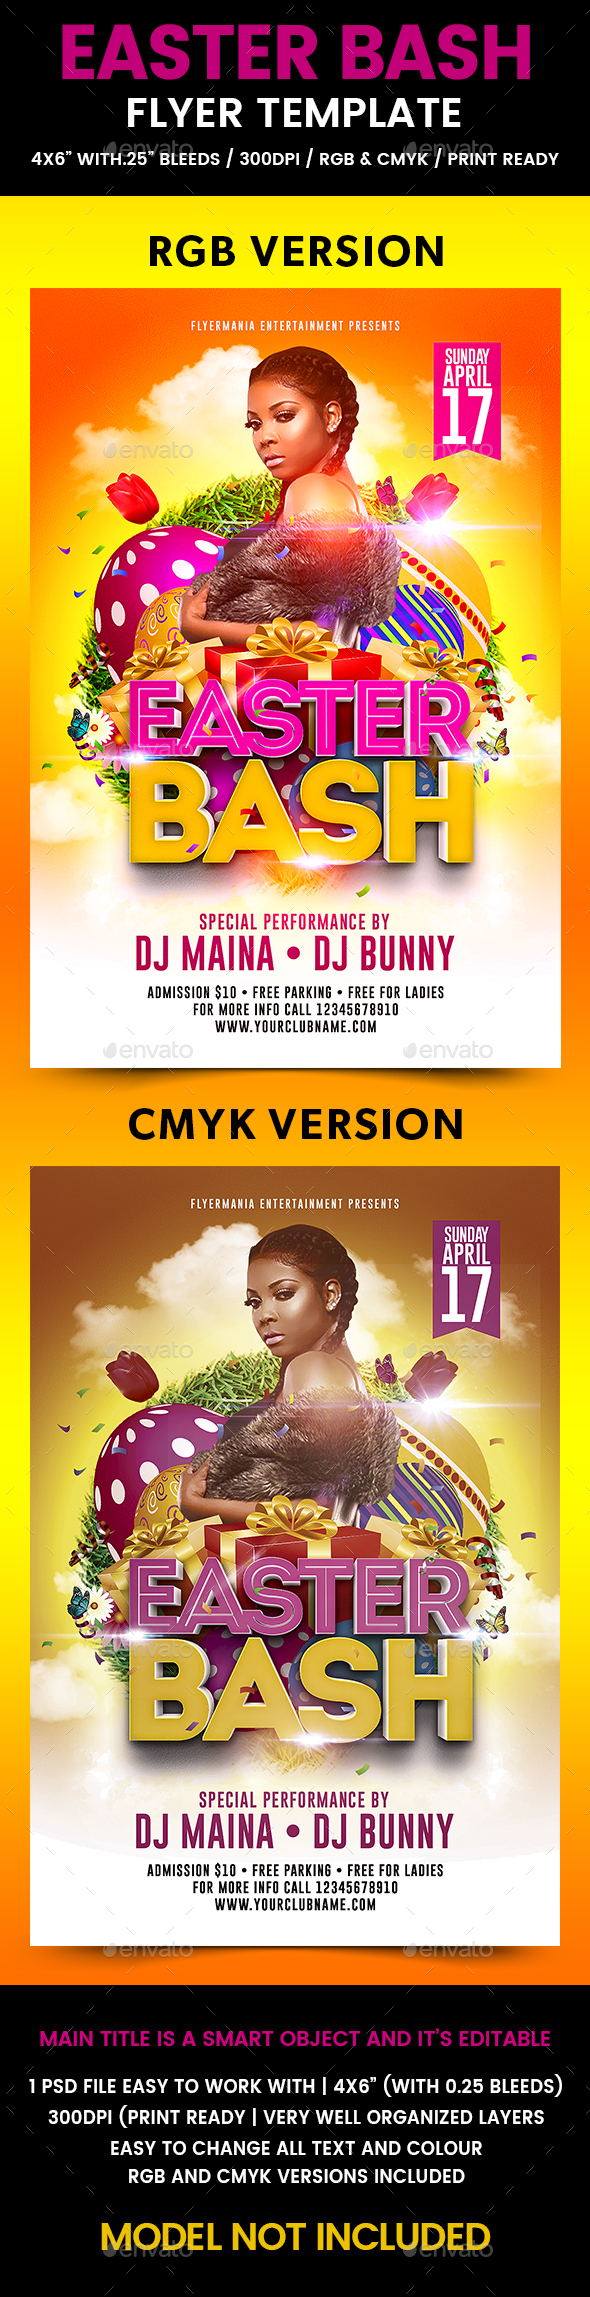 Easter Bash Flyer Template - Events Flyers